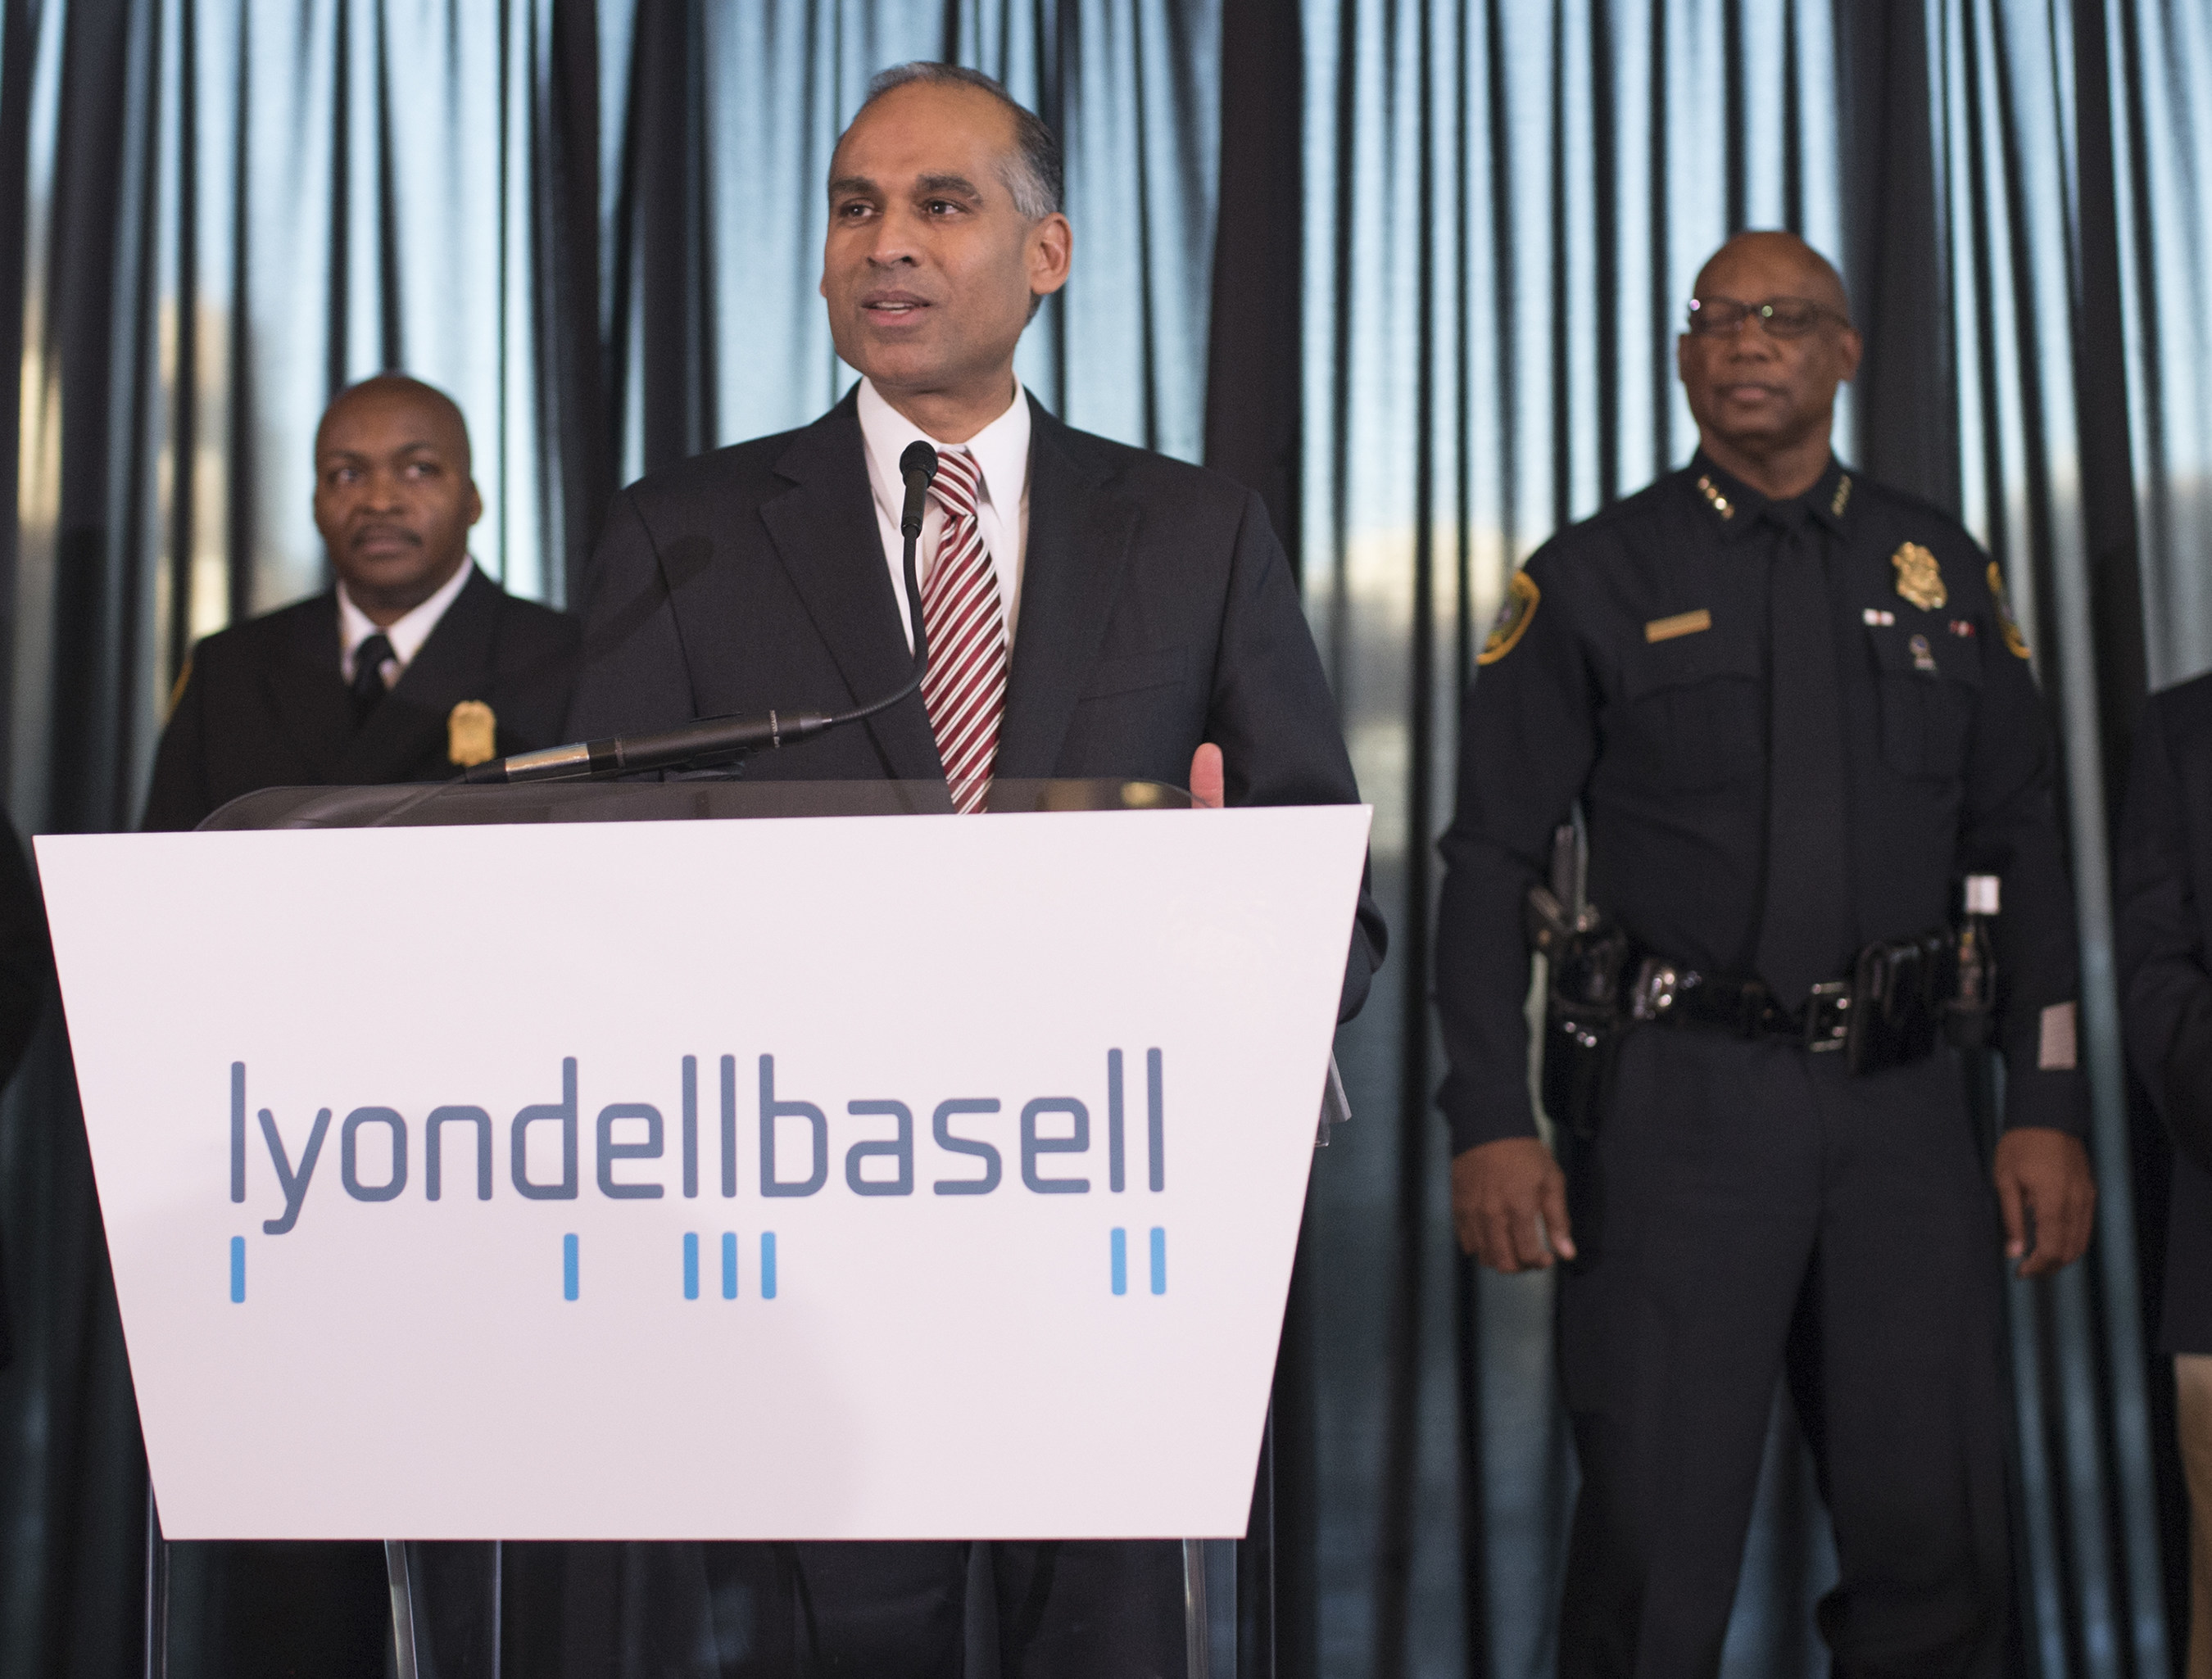 LyondellBasell Holiday Donation Fulfills Local First